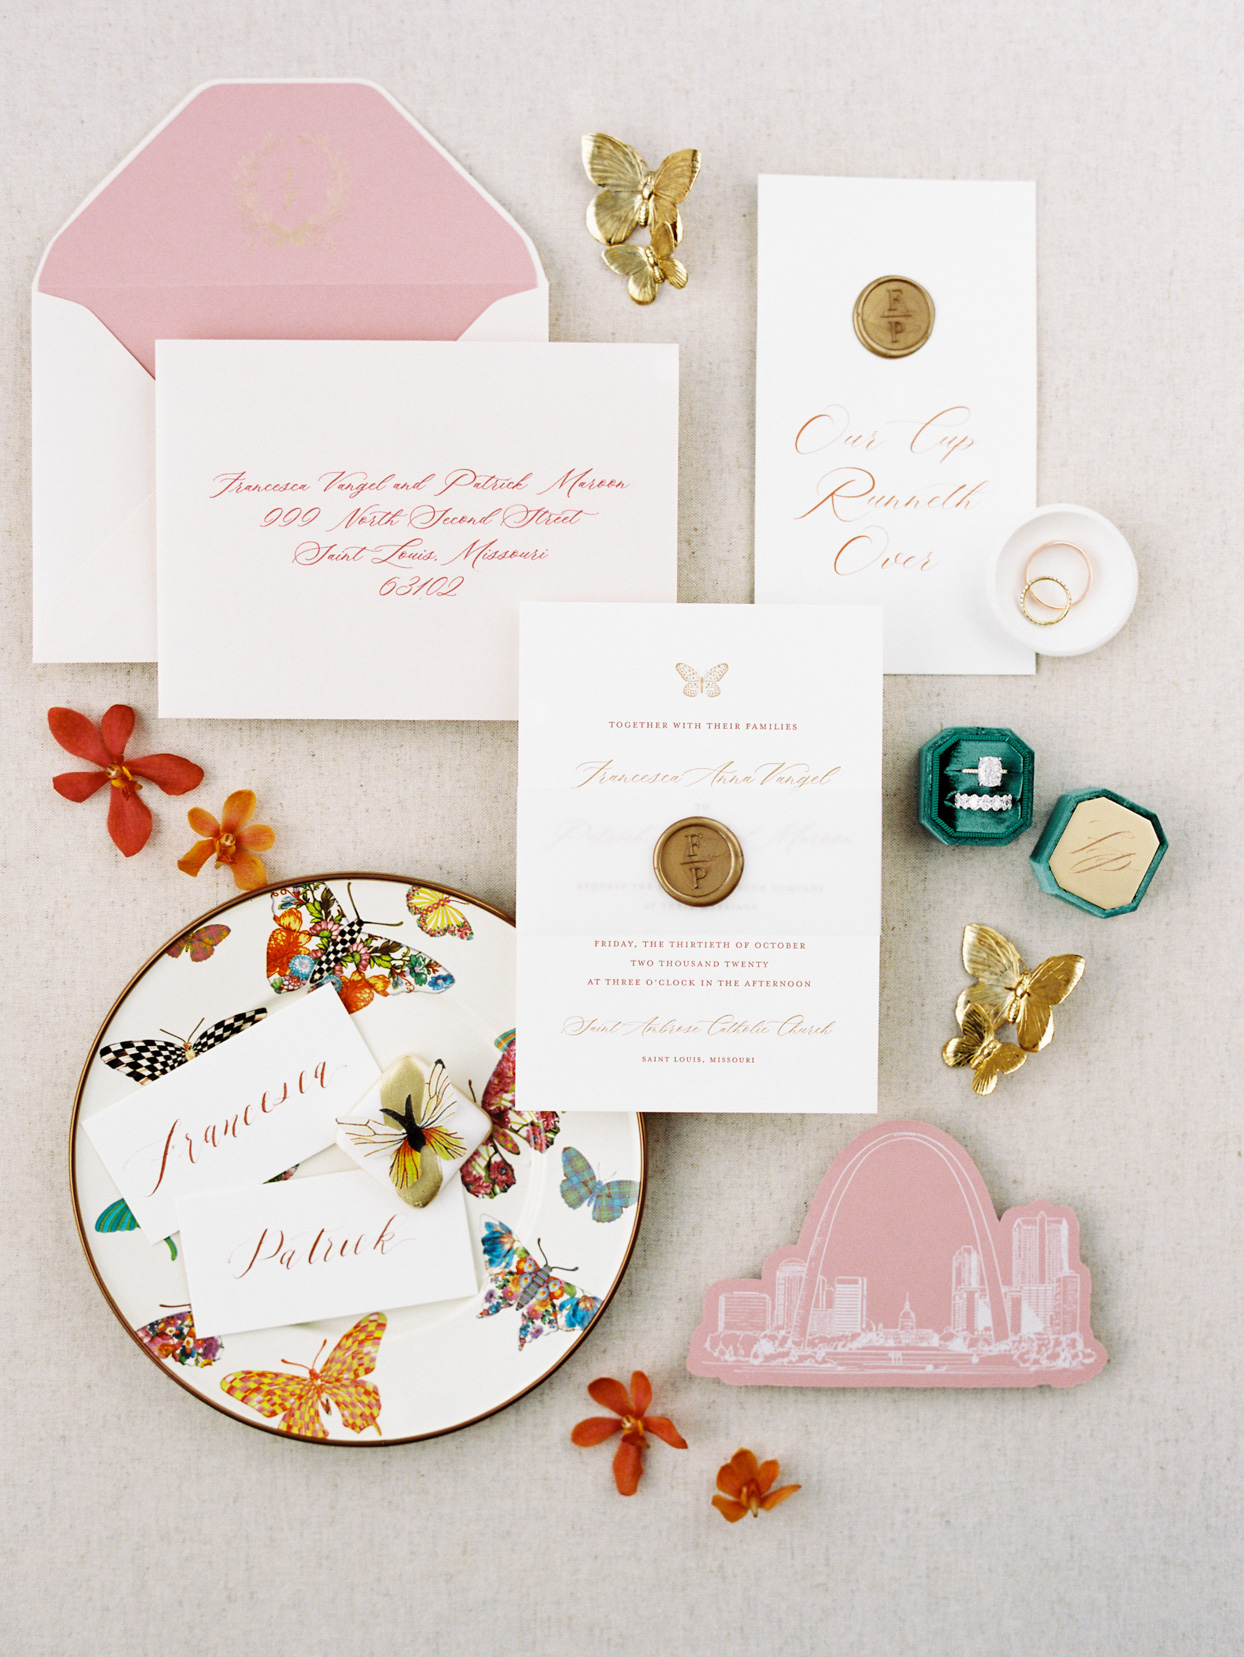 floral and butterfly wedding stationary set